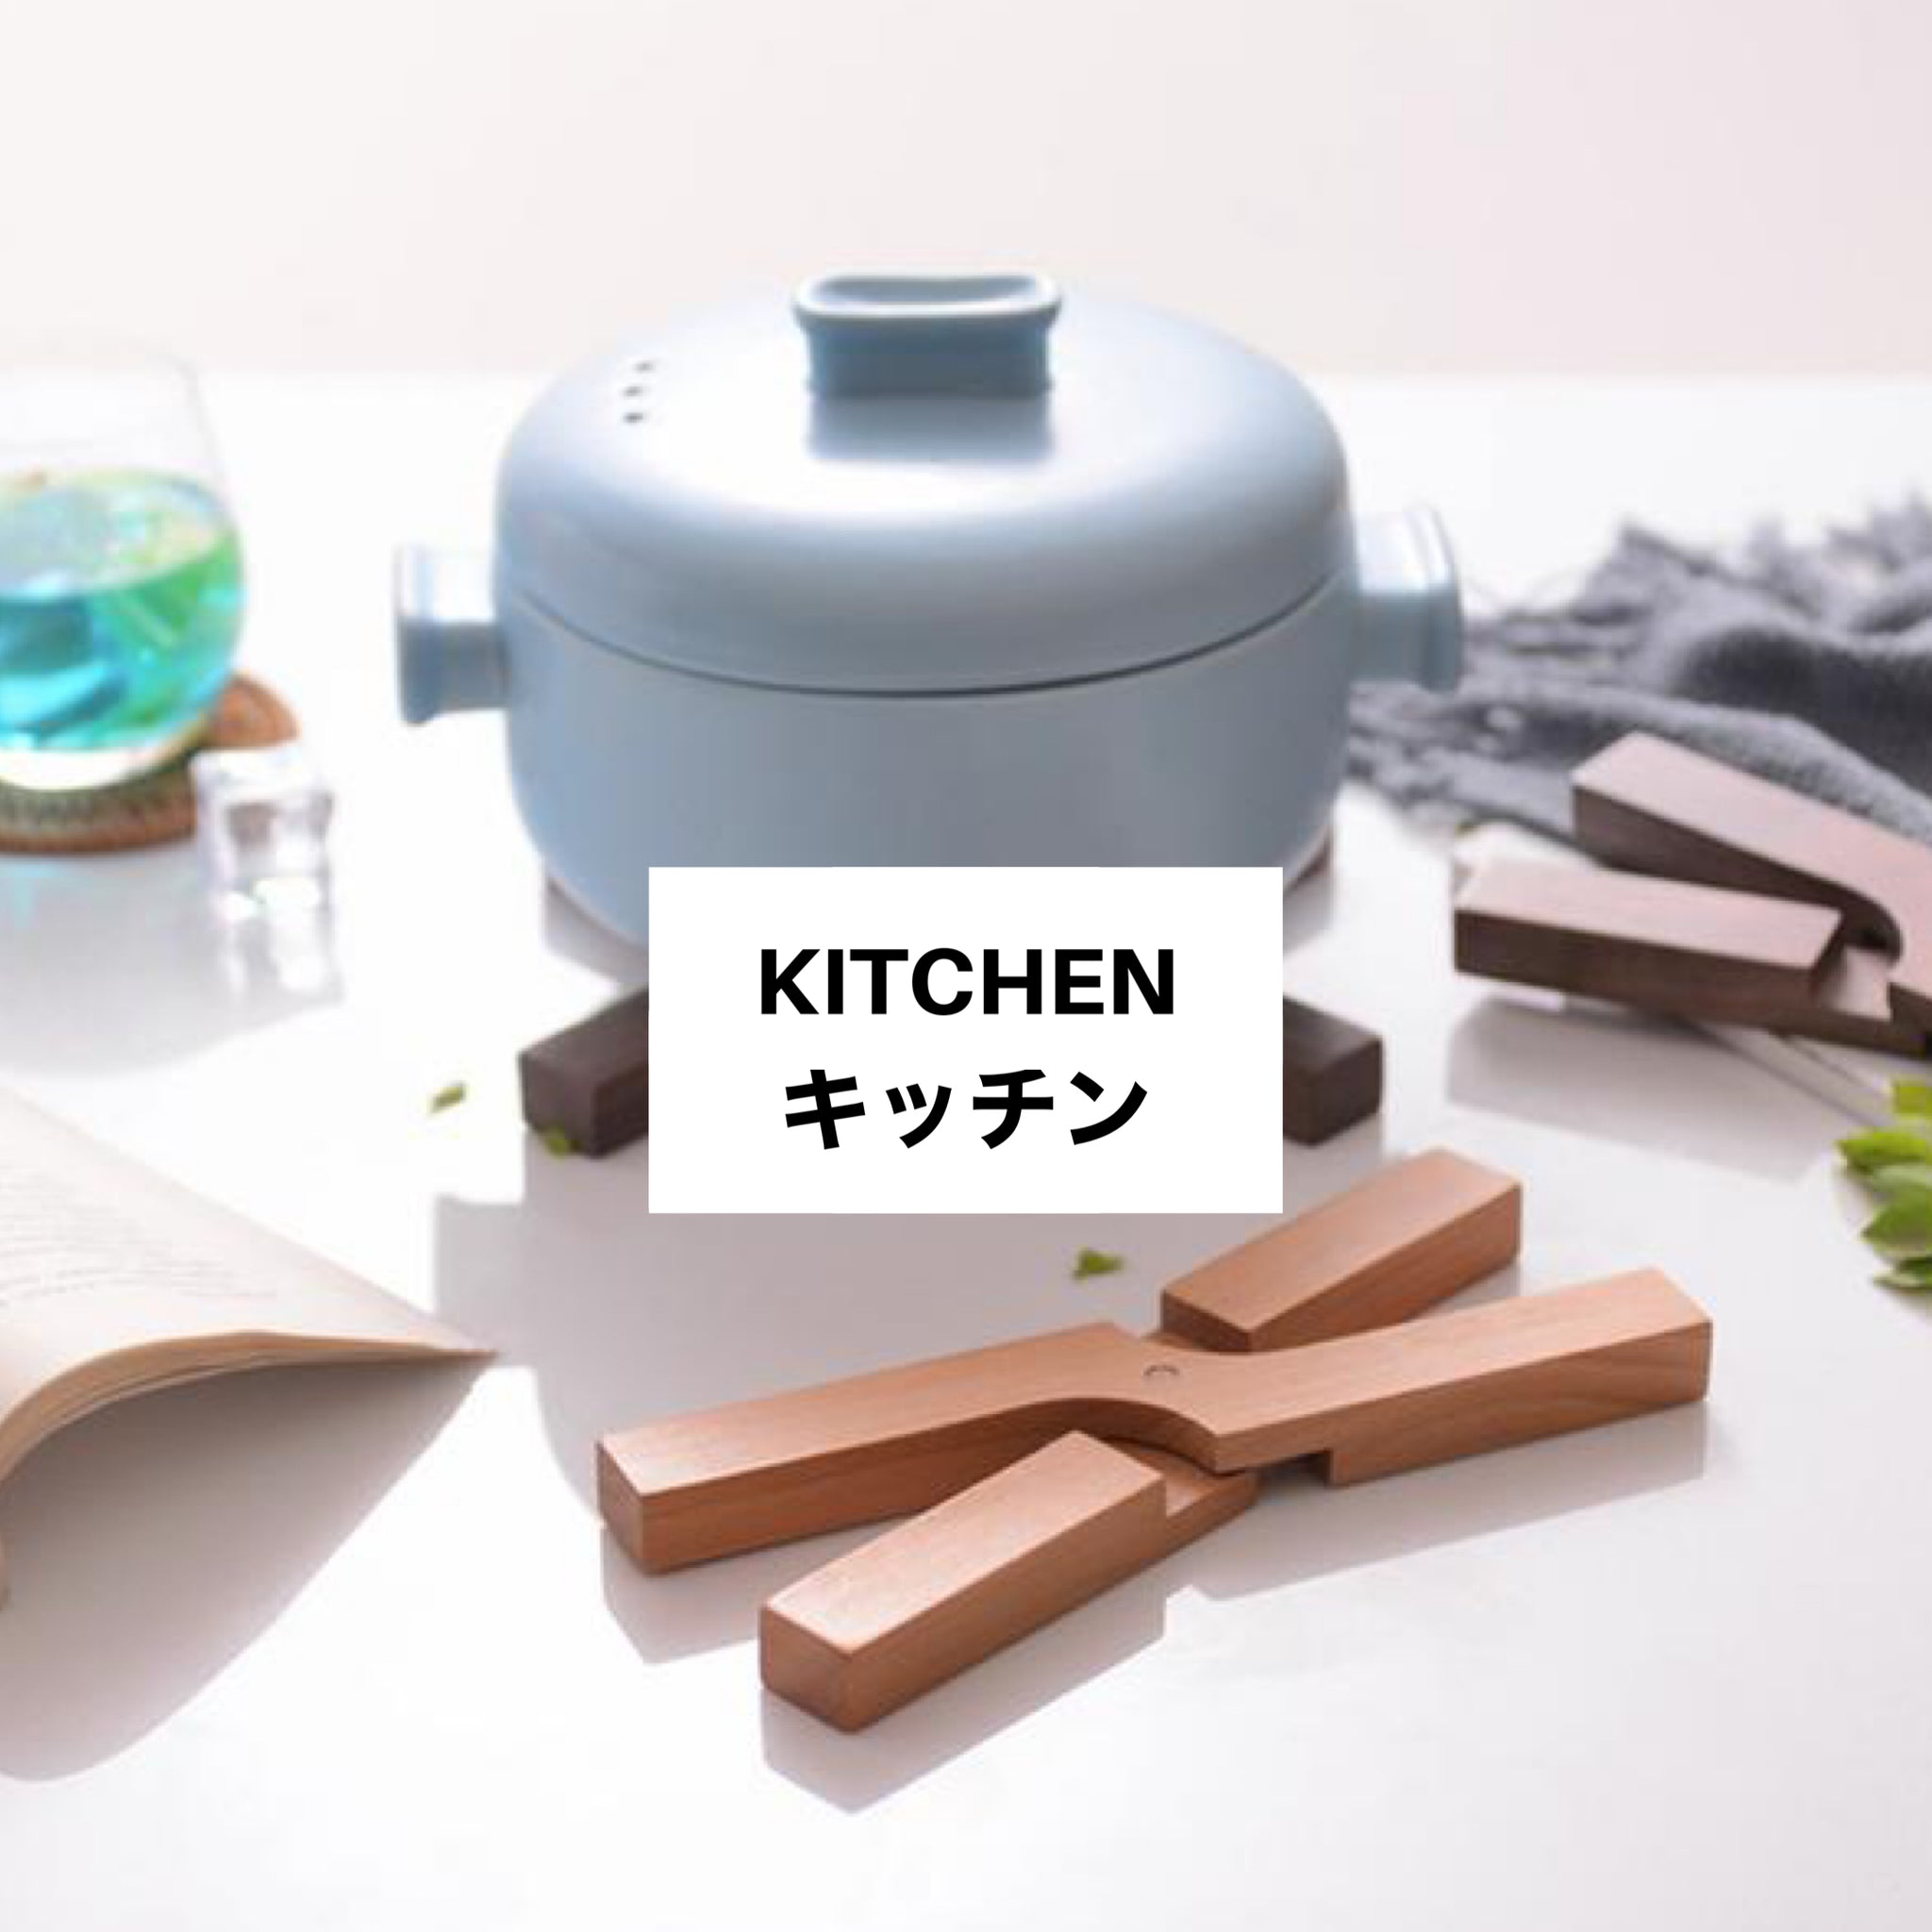 miTeigi | Kitchen | Japanese Apparel and Home Decor Retail Shopping